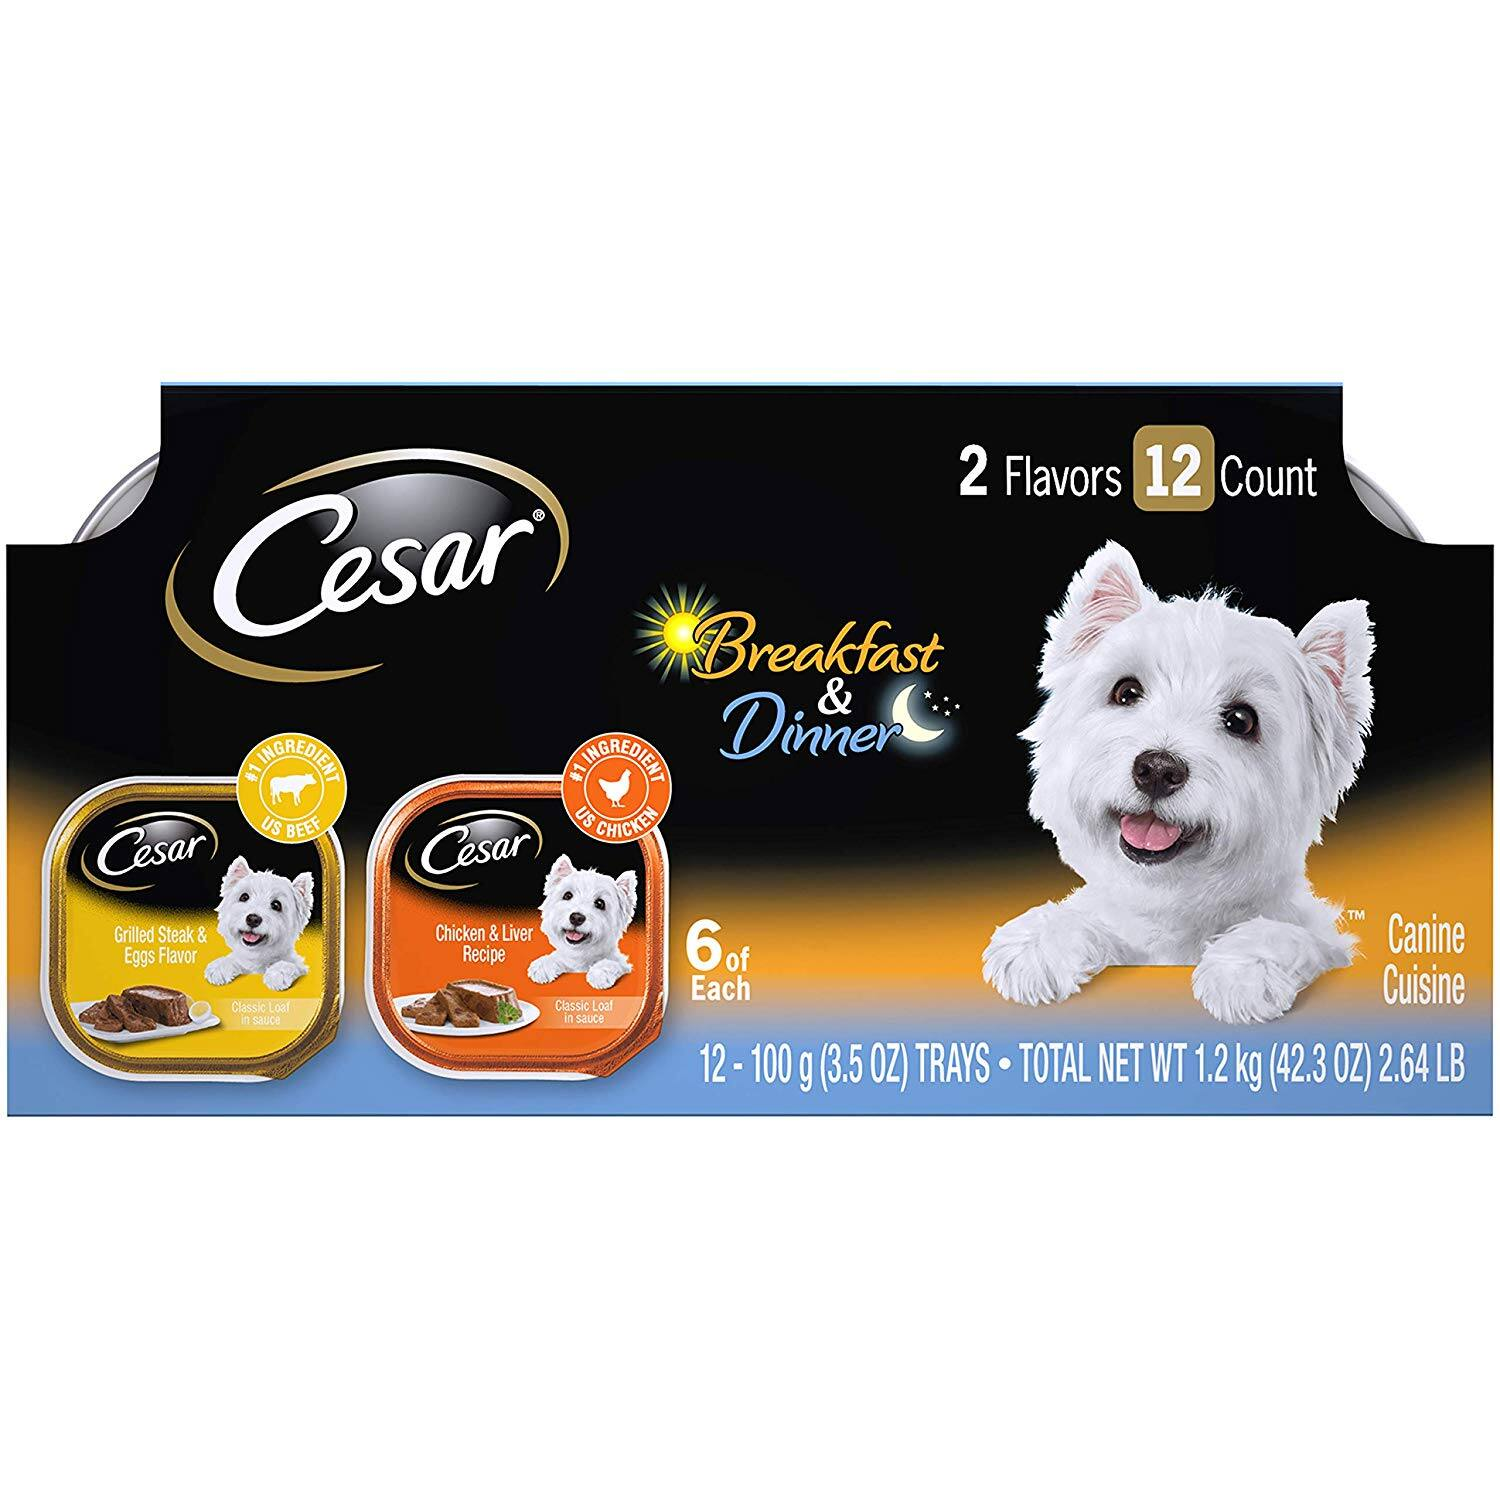 Cesar Canine Cuisine Wet Dog Food-50% extra savings coupon applied to first Subscribe & Save order only $4.06